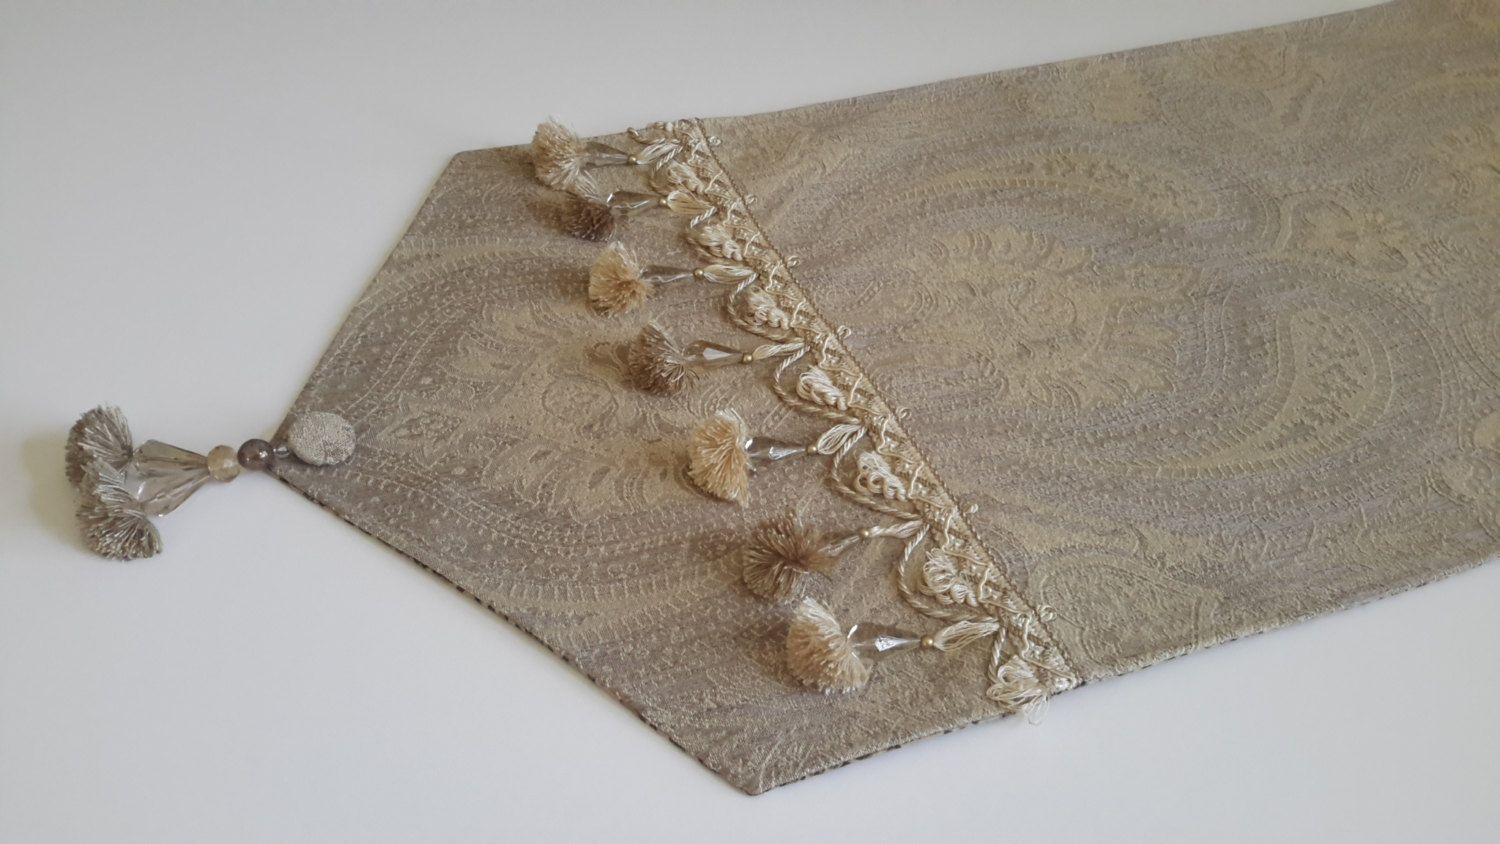 Caminos De Mesa Modernos Elegant Gold Table Runner Woven With A Classic Paisley Jacquard